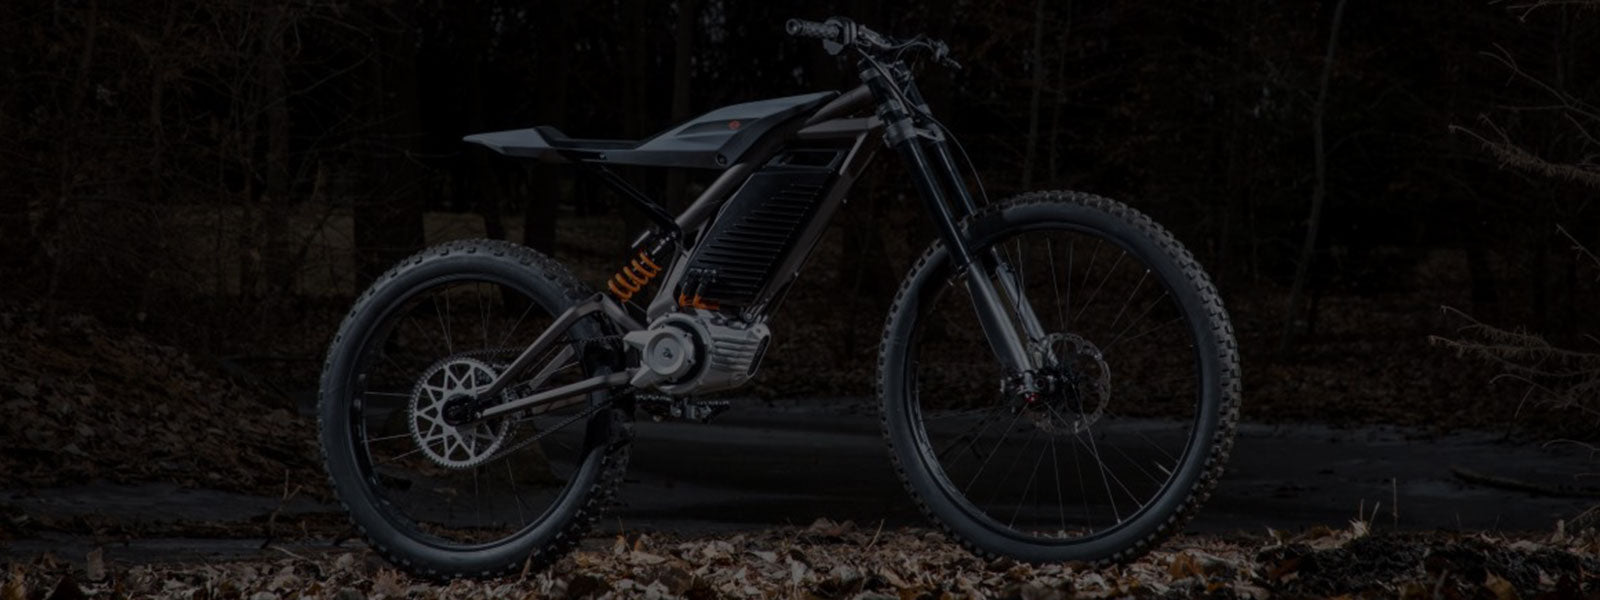 First Look at Harley-Davidson's New Electric Bikes